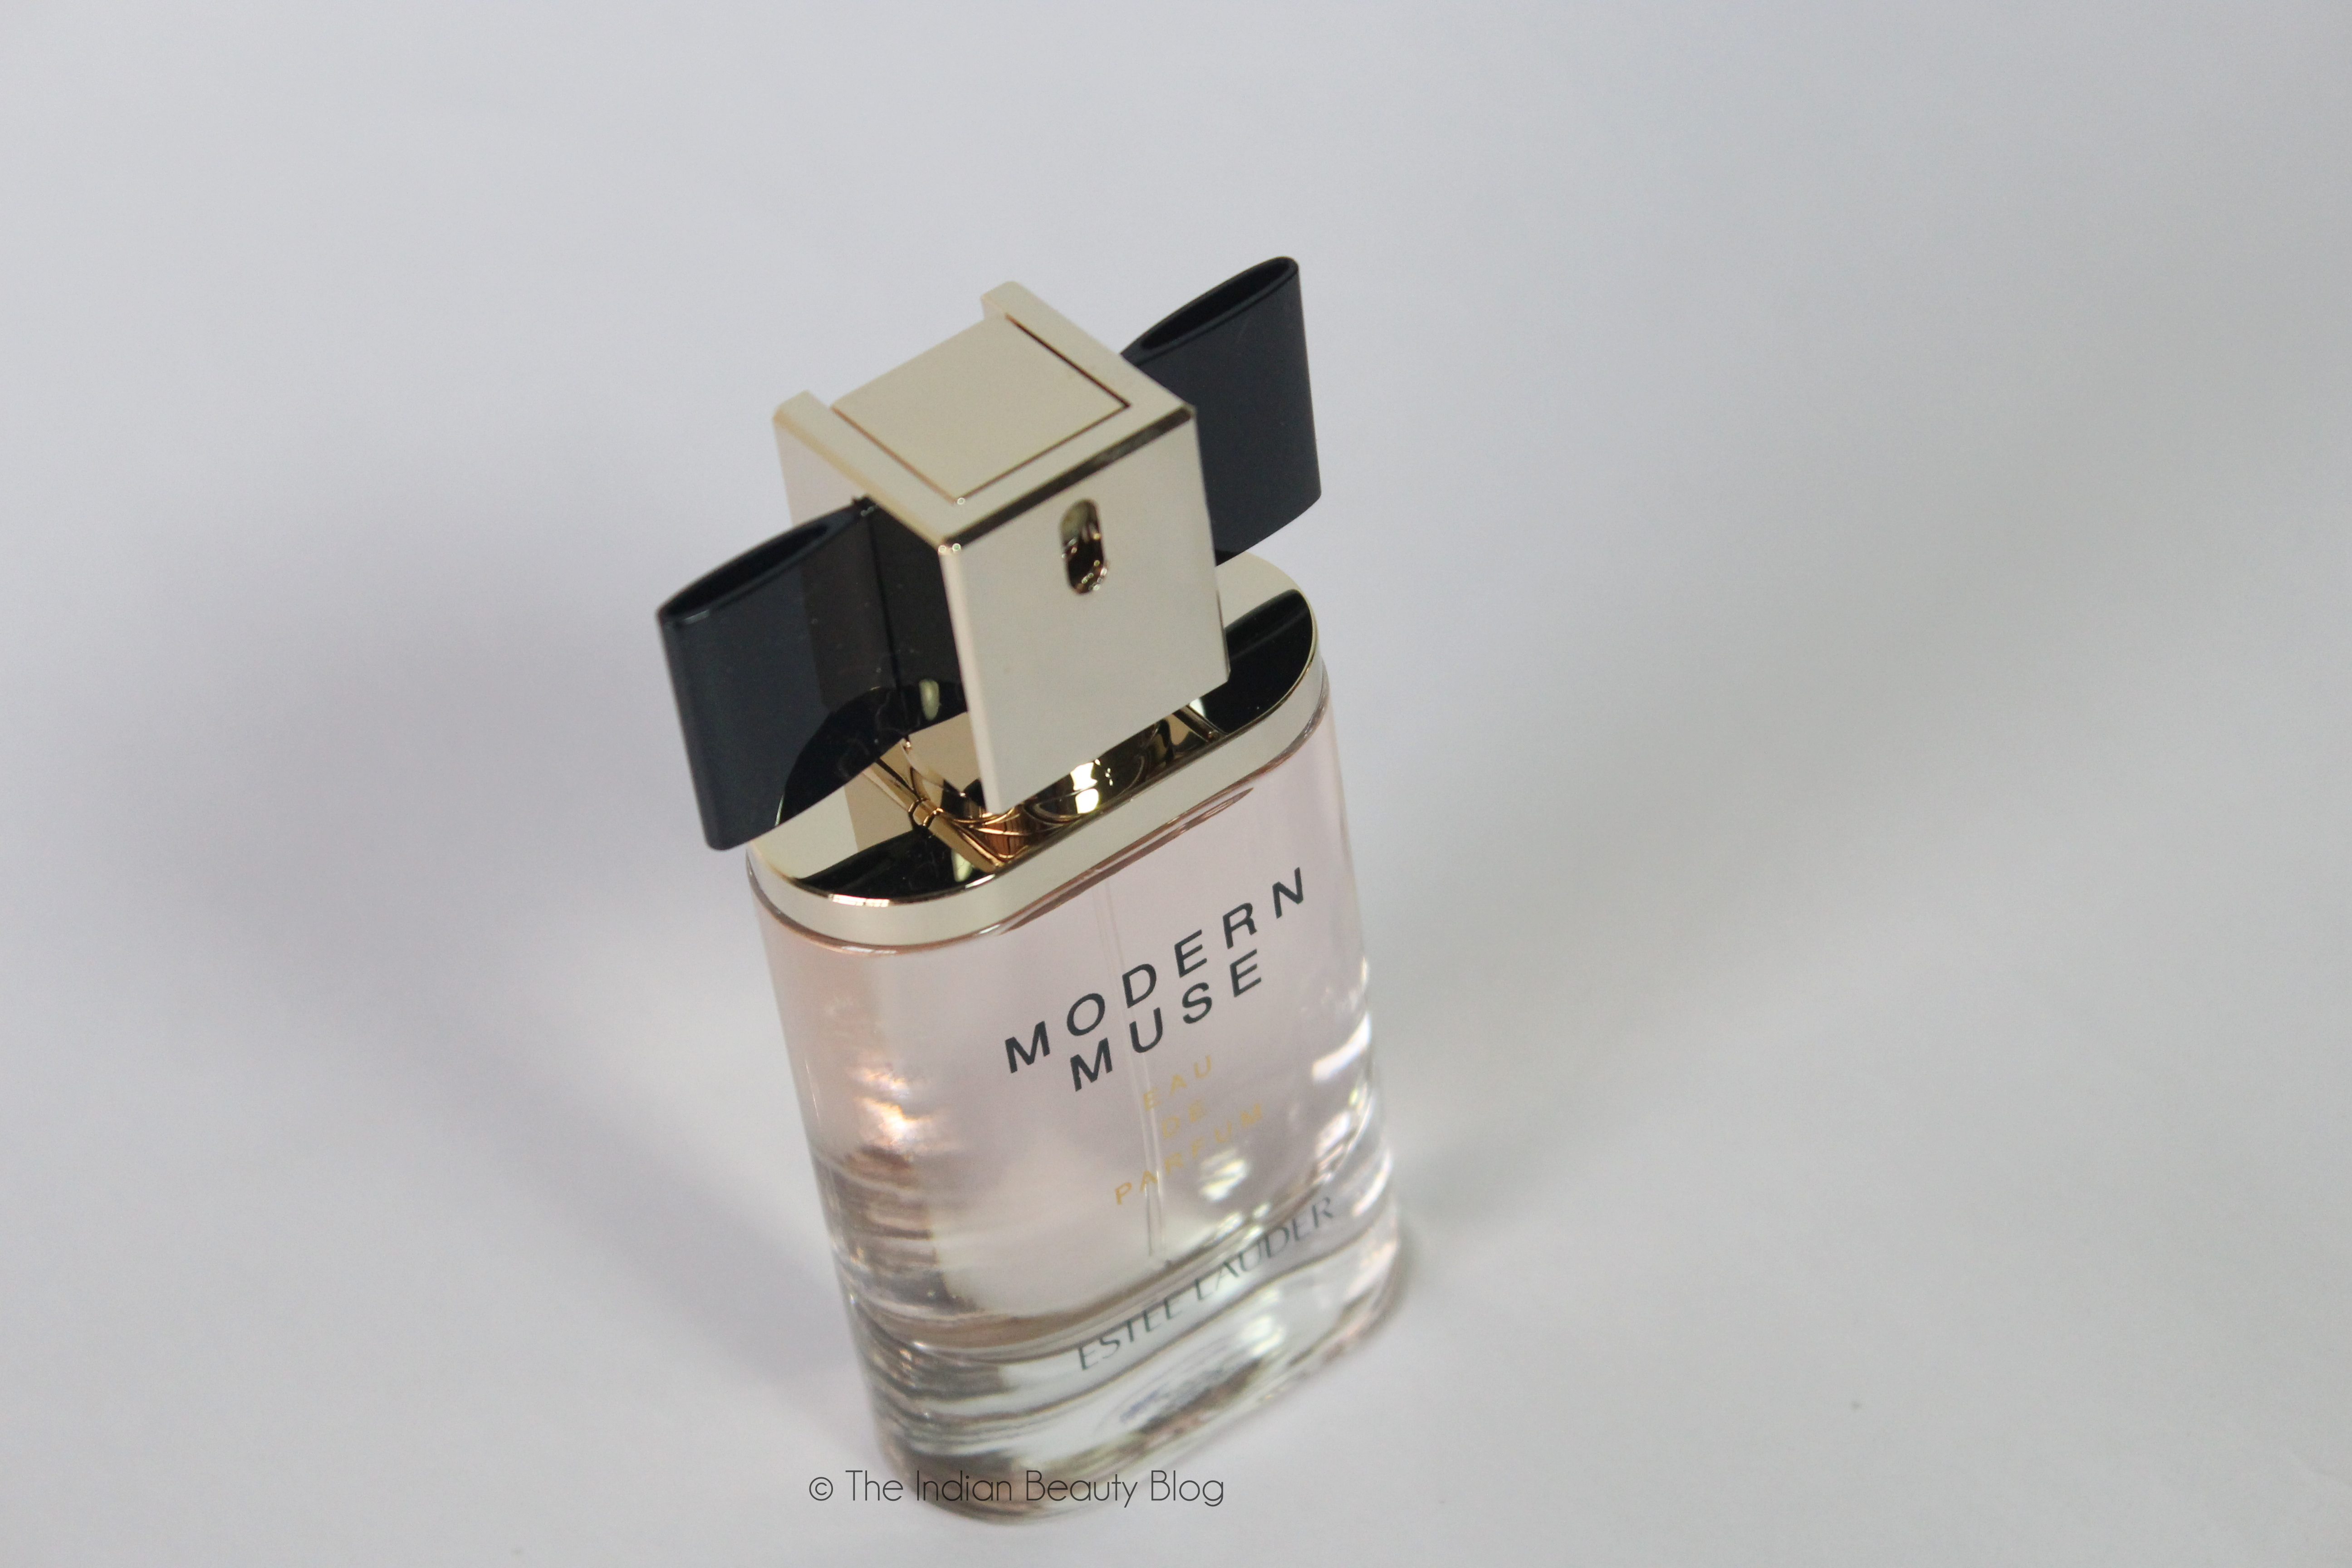 Estee Lauder Modern Muse Edp Review The Indian Beauty Blog Chic For Women 100ml